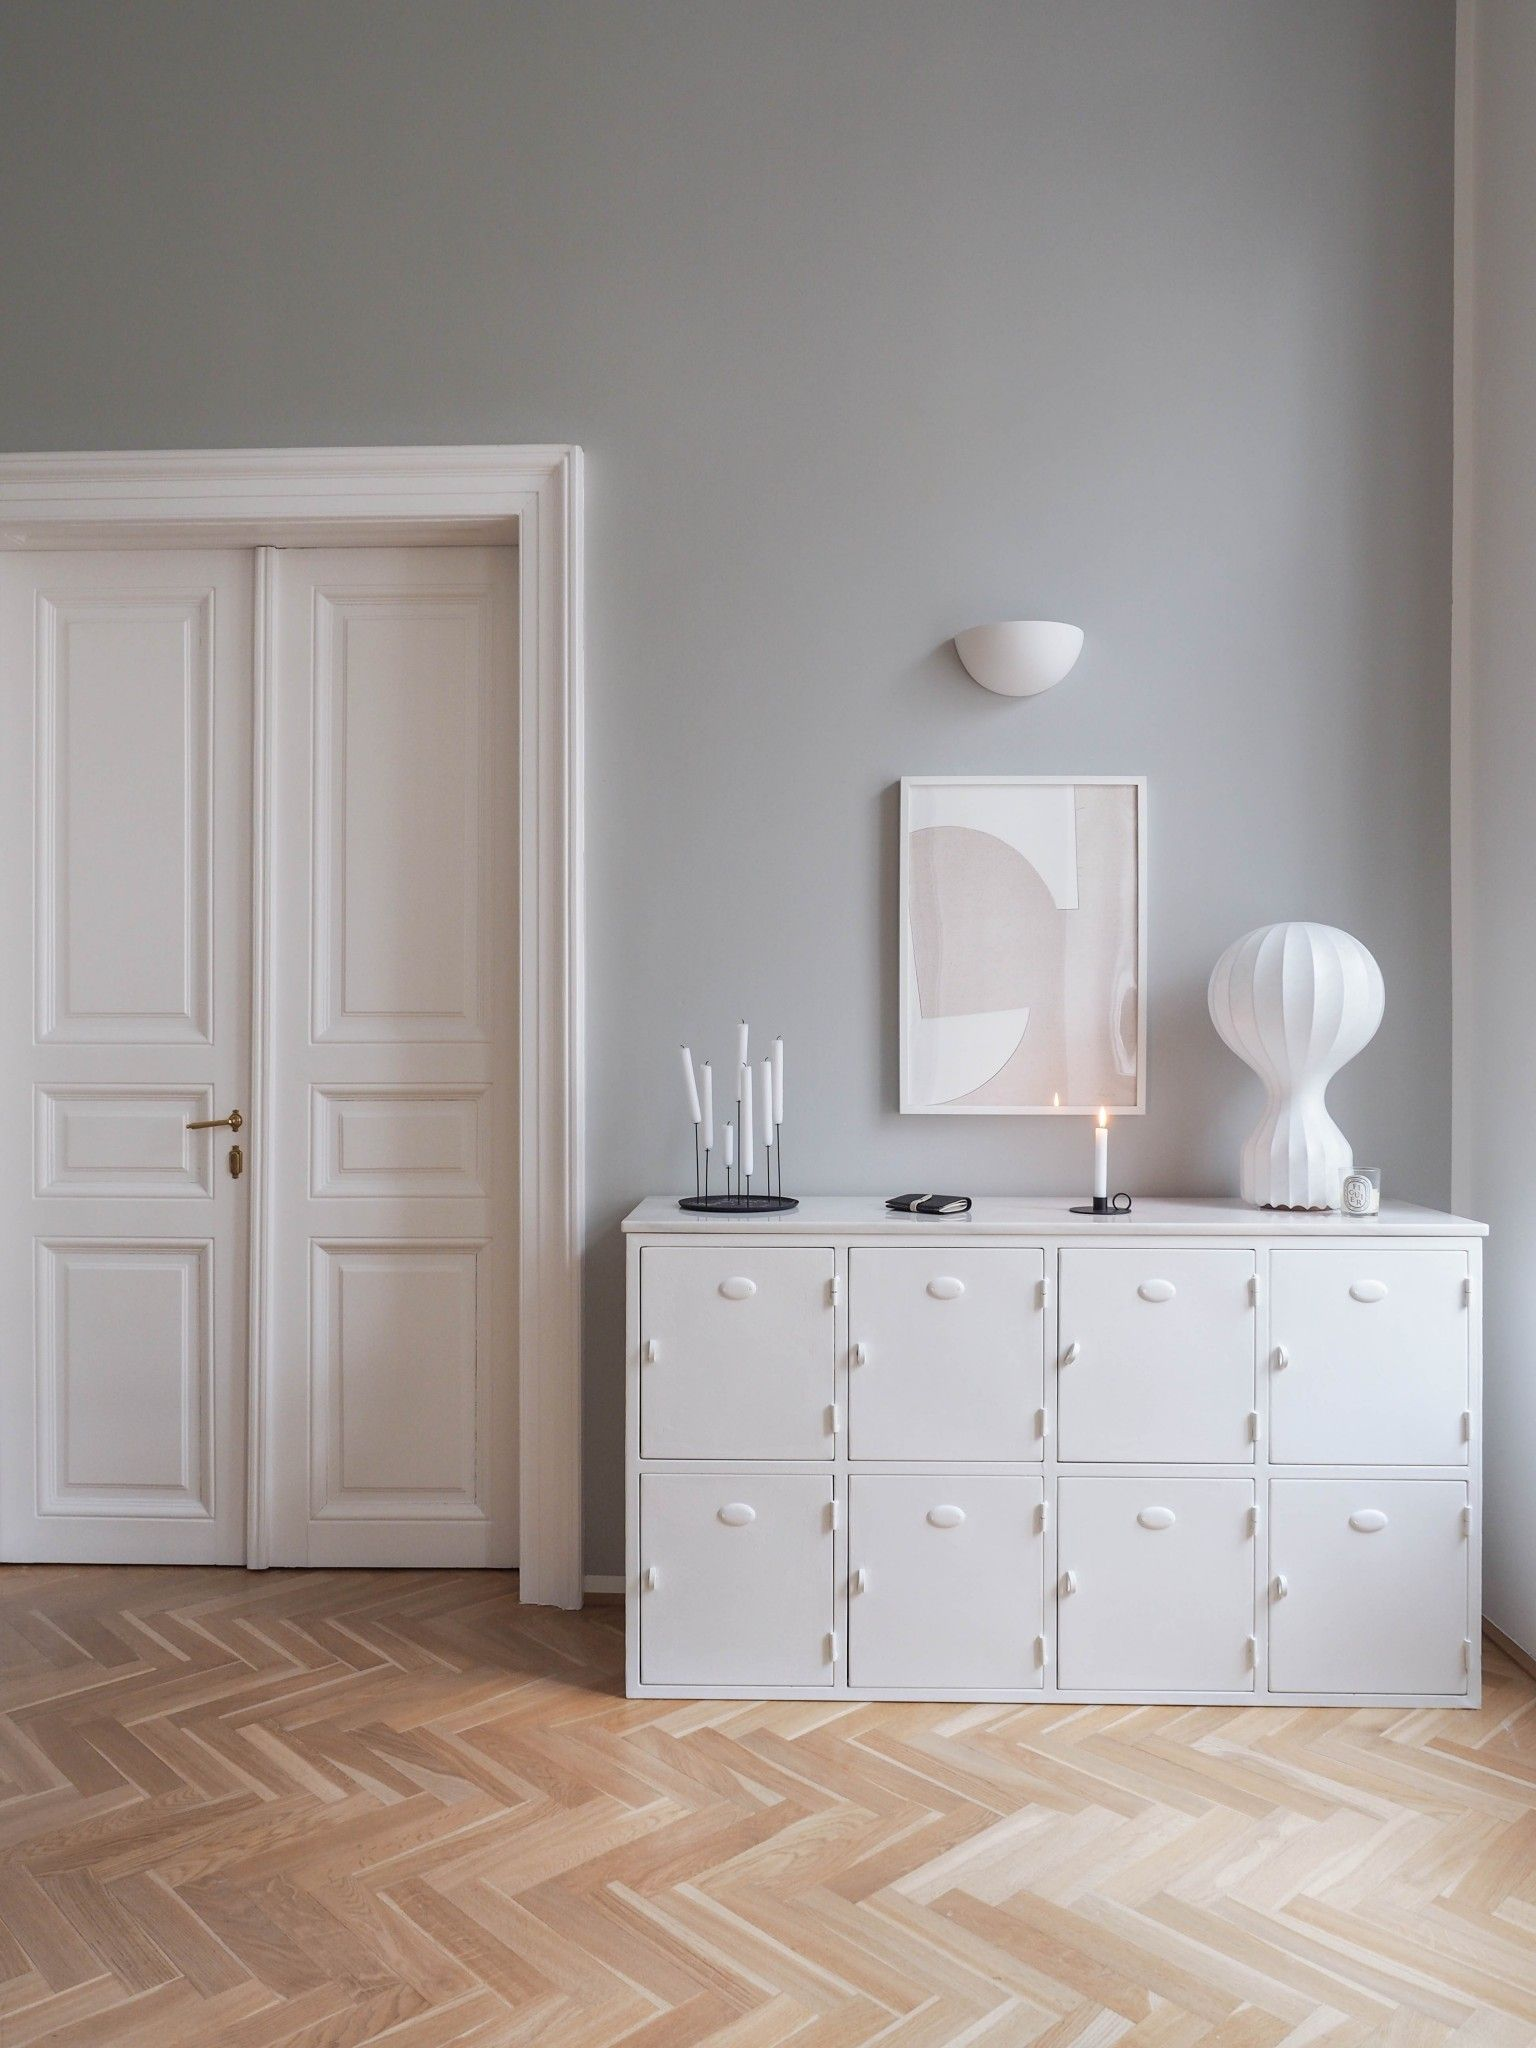 Graue Wandfarbe von Farrow & Ball #graybedroomwithpopofcolor